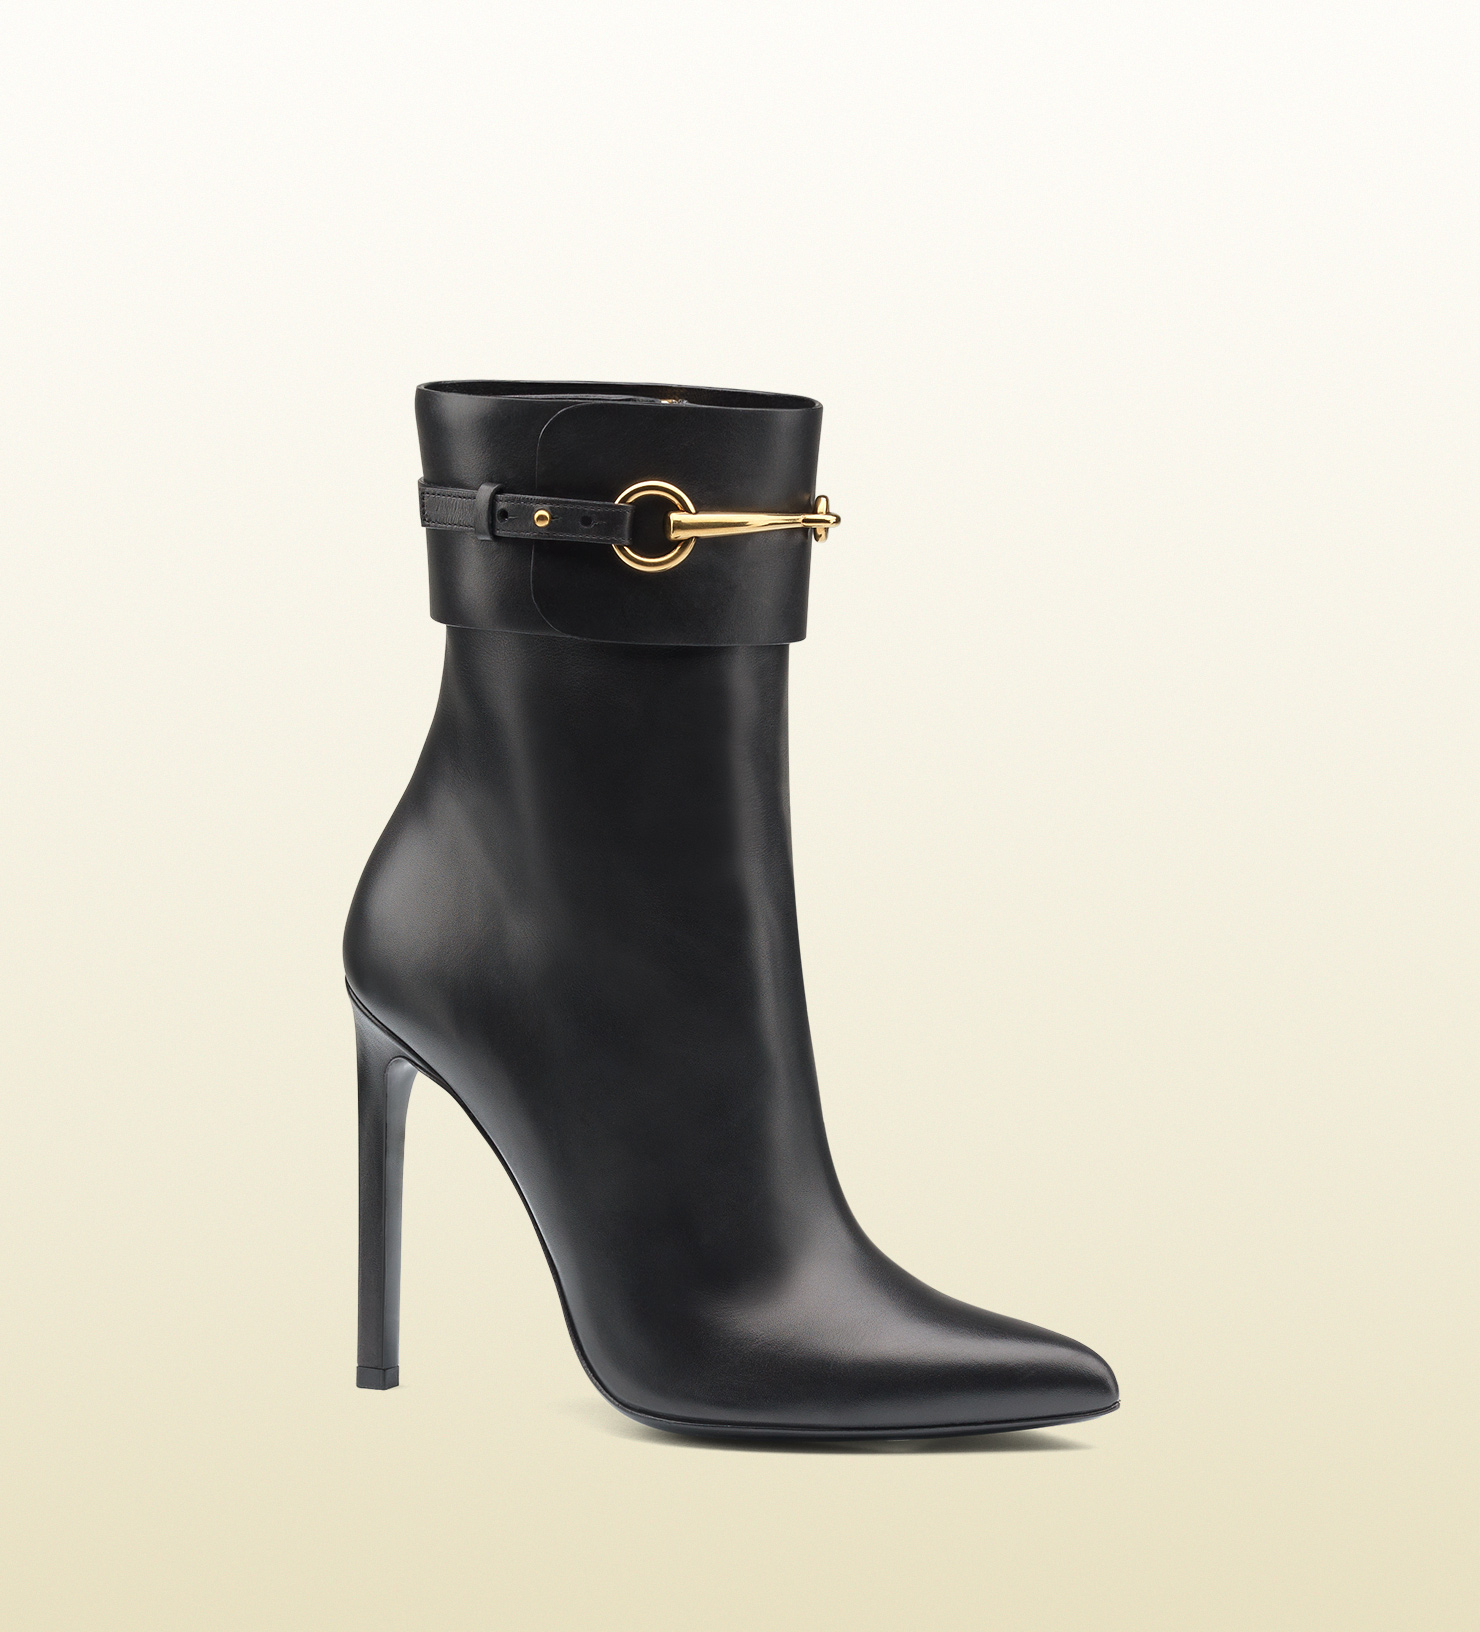 9427061beda Ankle Lyst Gucci Boot Black In Horsebit Leather PWtn8W6xF